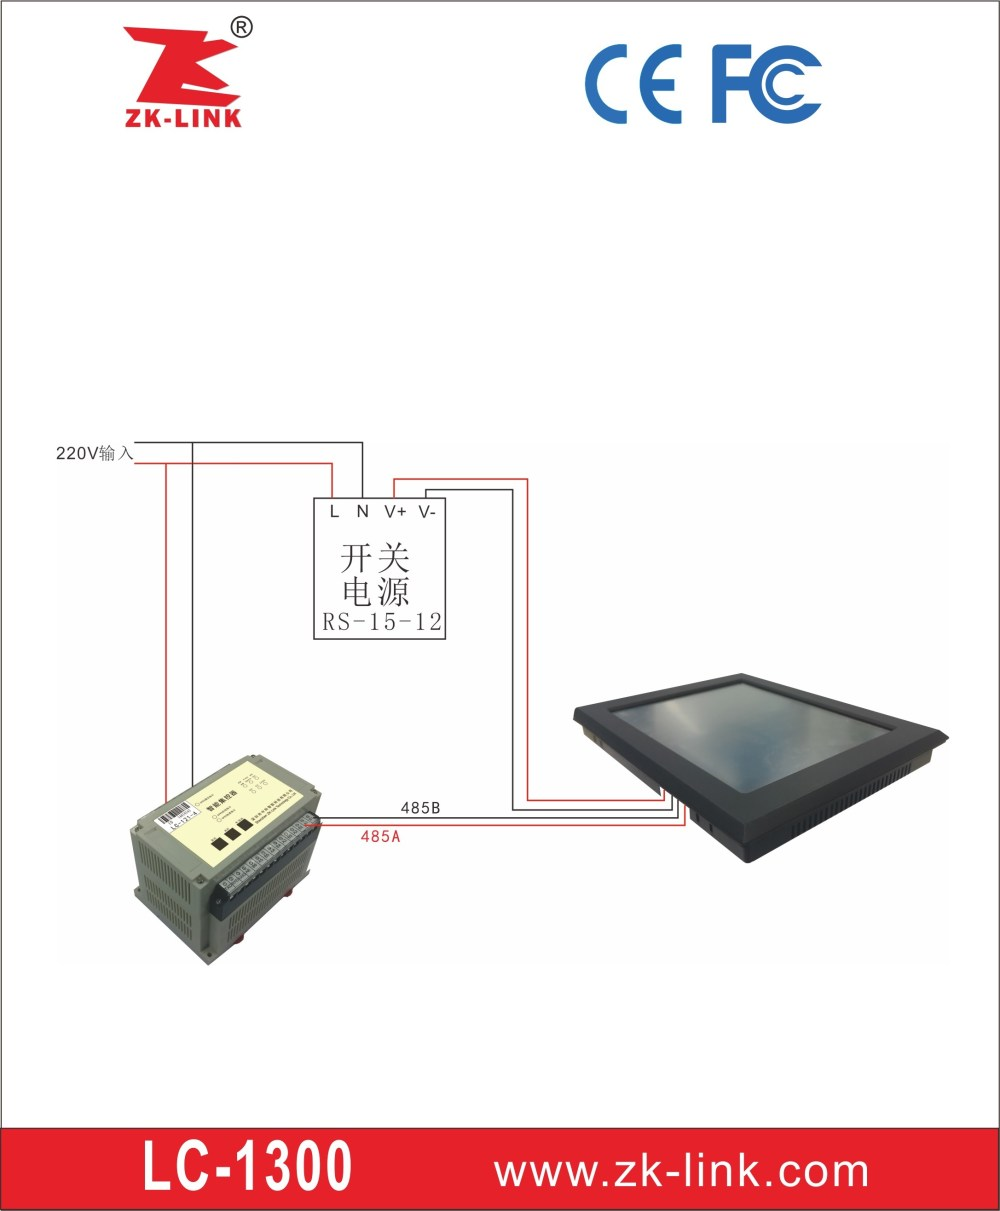 medium resolution of fcc ce rohs digital display control panel for lighting control system lc 1300